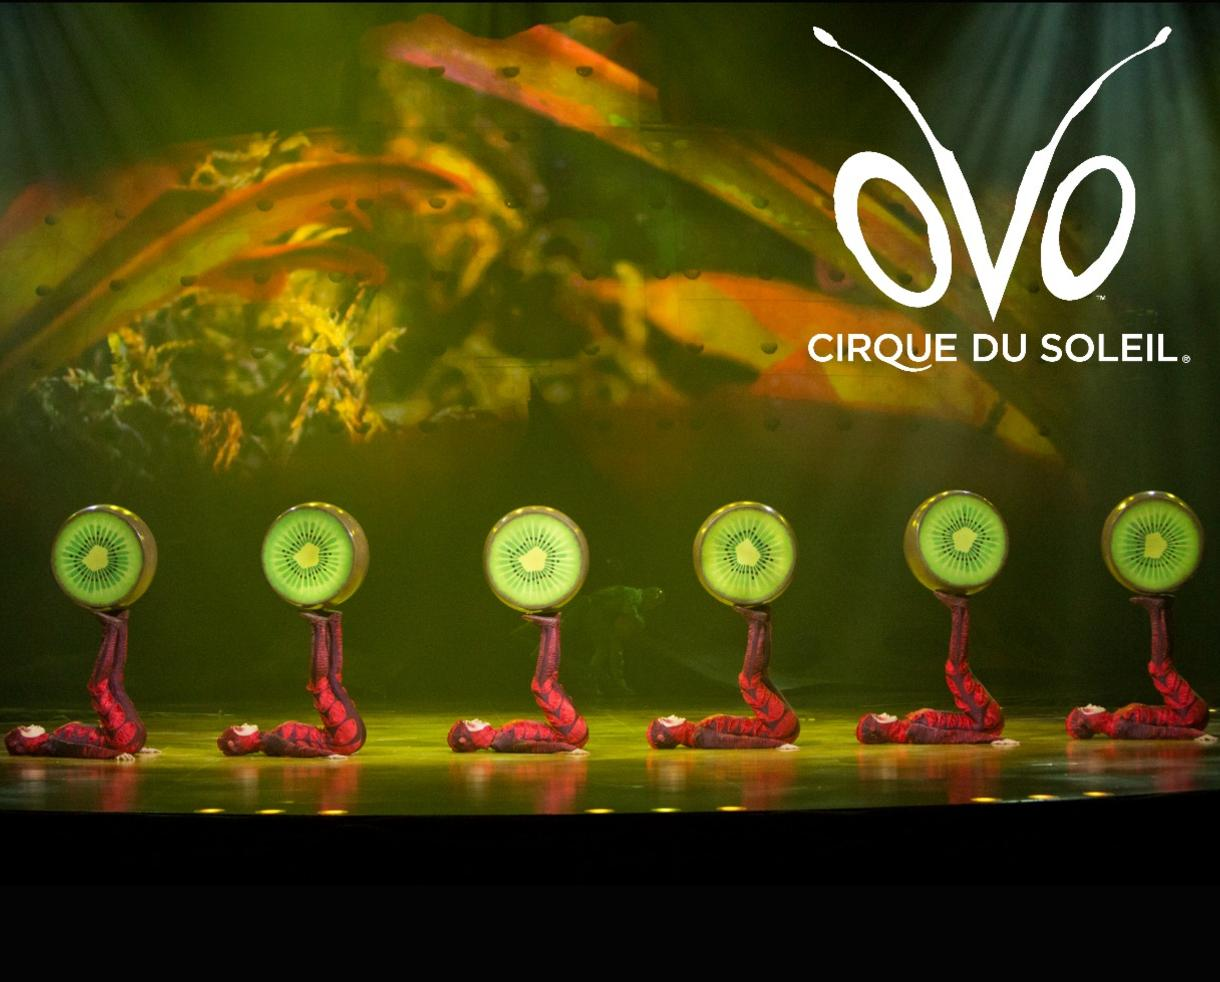 20% Off Tickets to Cirque du Soleil's OVO - Baltimore and Fairfax